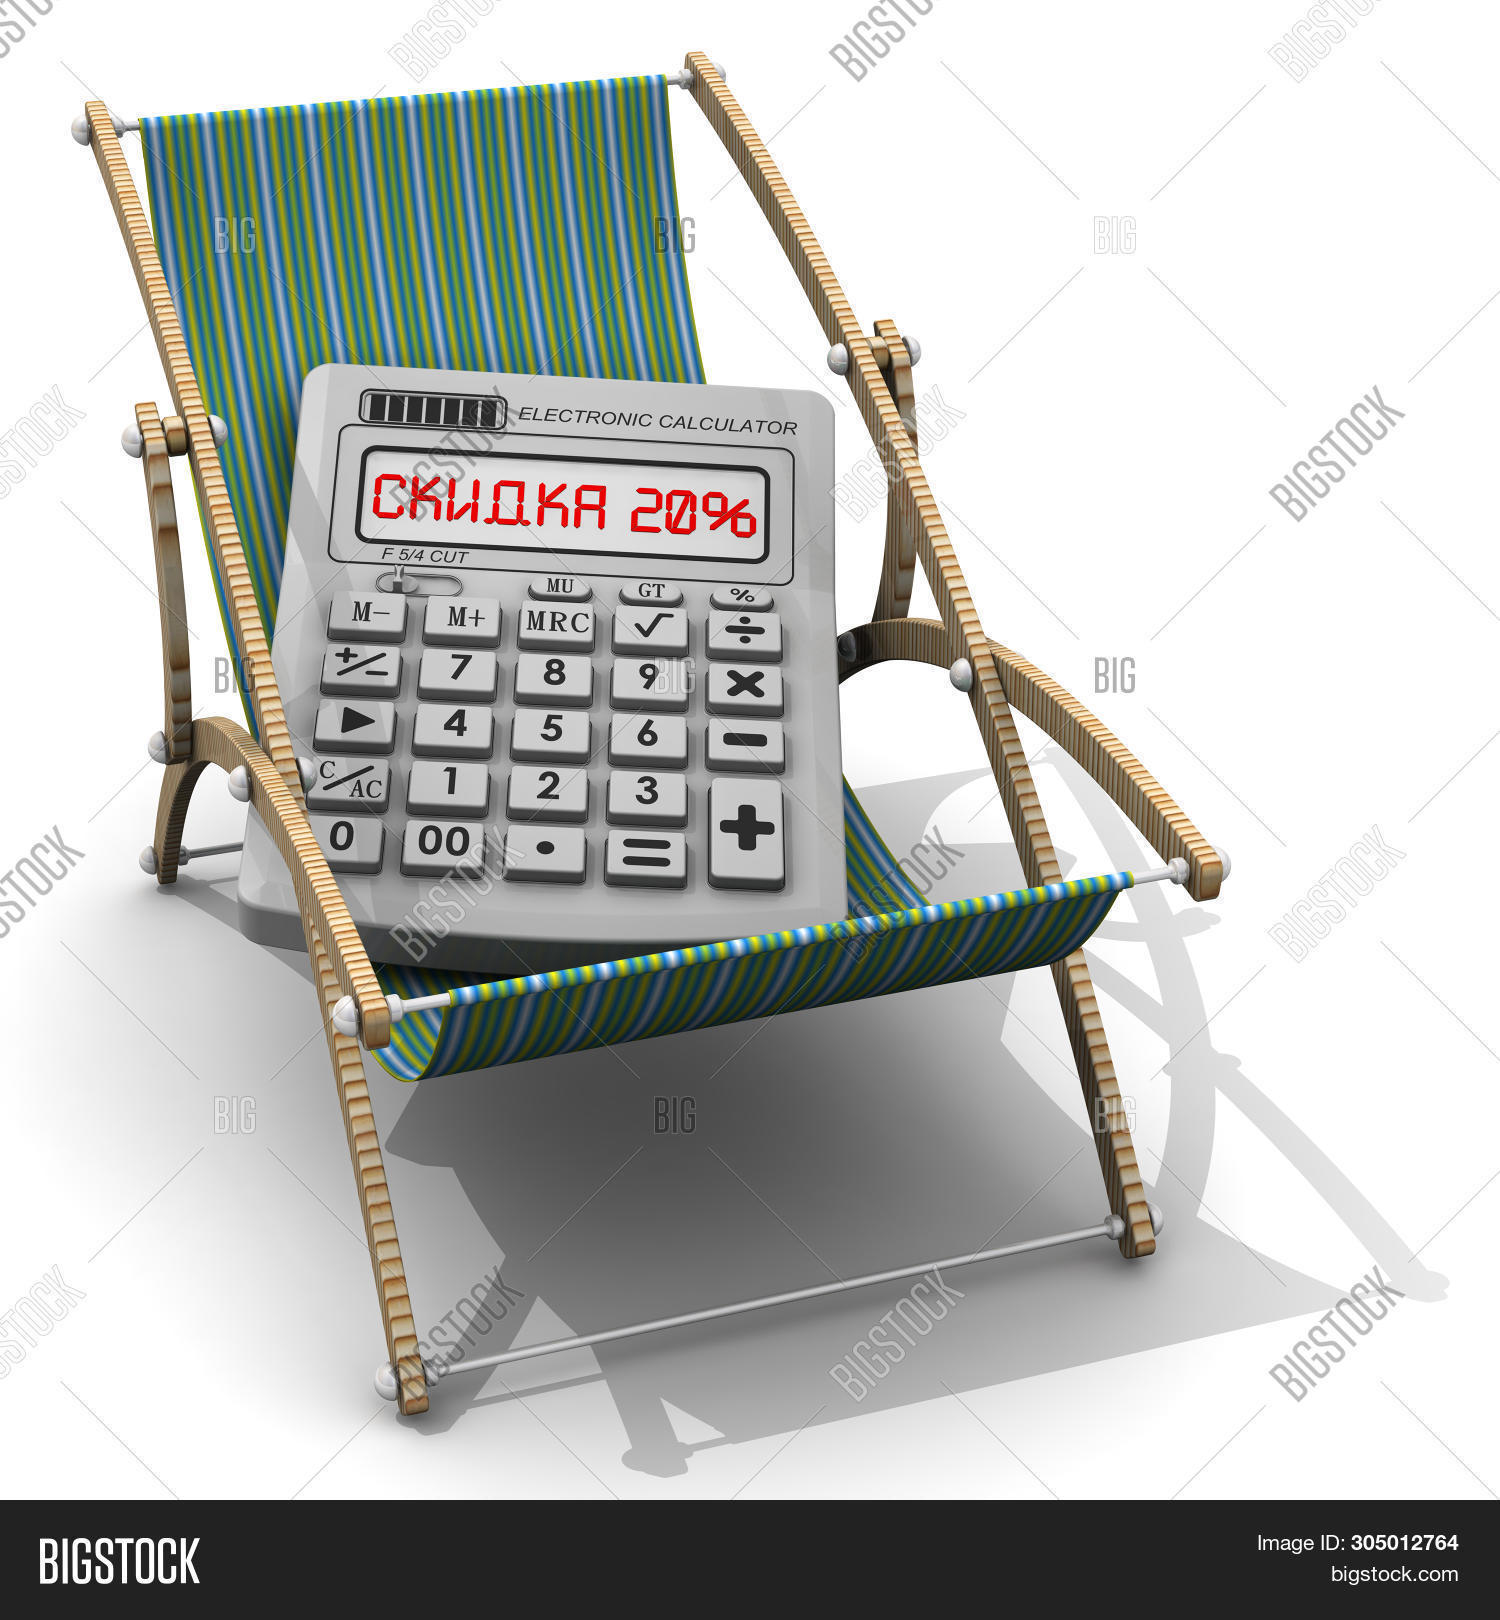 20,3D,Rendering,advertising,background,benefits,best,bonus,calculation,calculator,chaise,conclusion,conditions,cost,count,counting,cruise,digitally,discount,electronic,finance,generated,image,info,information,longue,lounger,low,offer,percent,percentage,perks,profitable,rest,sale,savings,sizeable,solution,tickets,travel,twenty,vacation,white